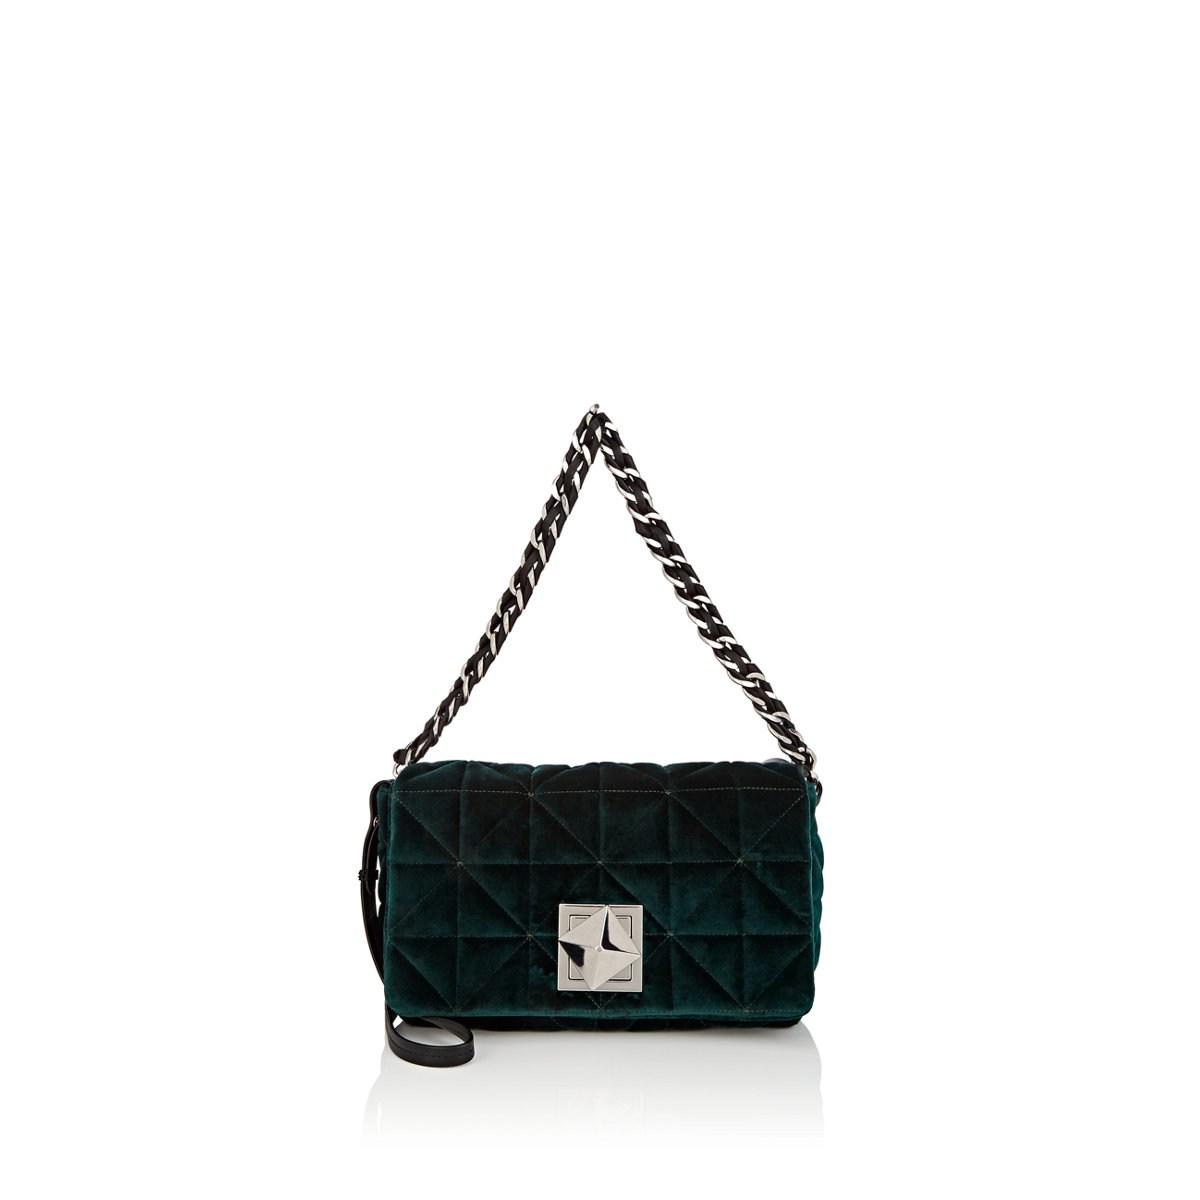 d8bd6c1d6a Sonia Rykiel Le Copain Large Velvet Shoulder Bag in Green - Lyst